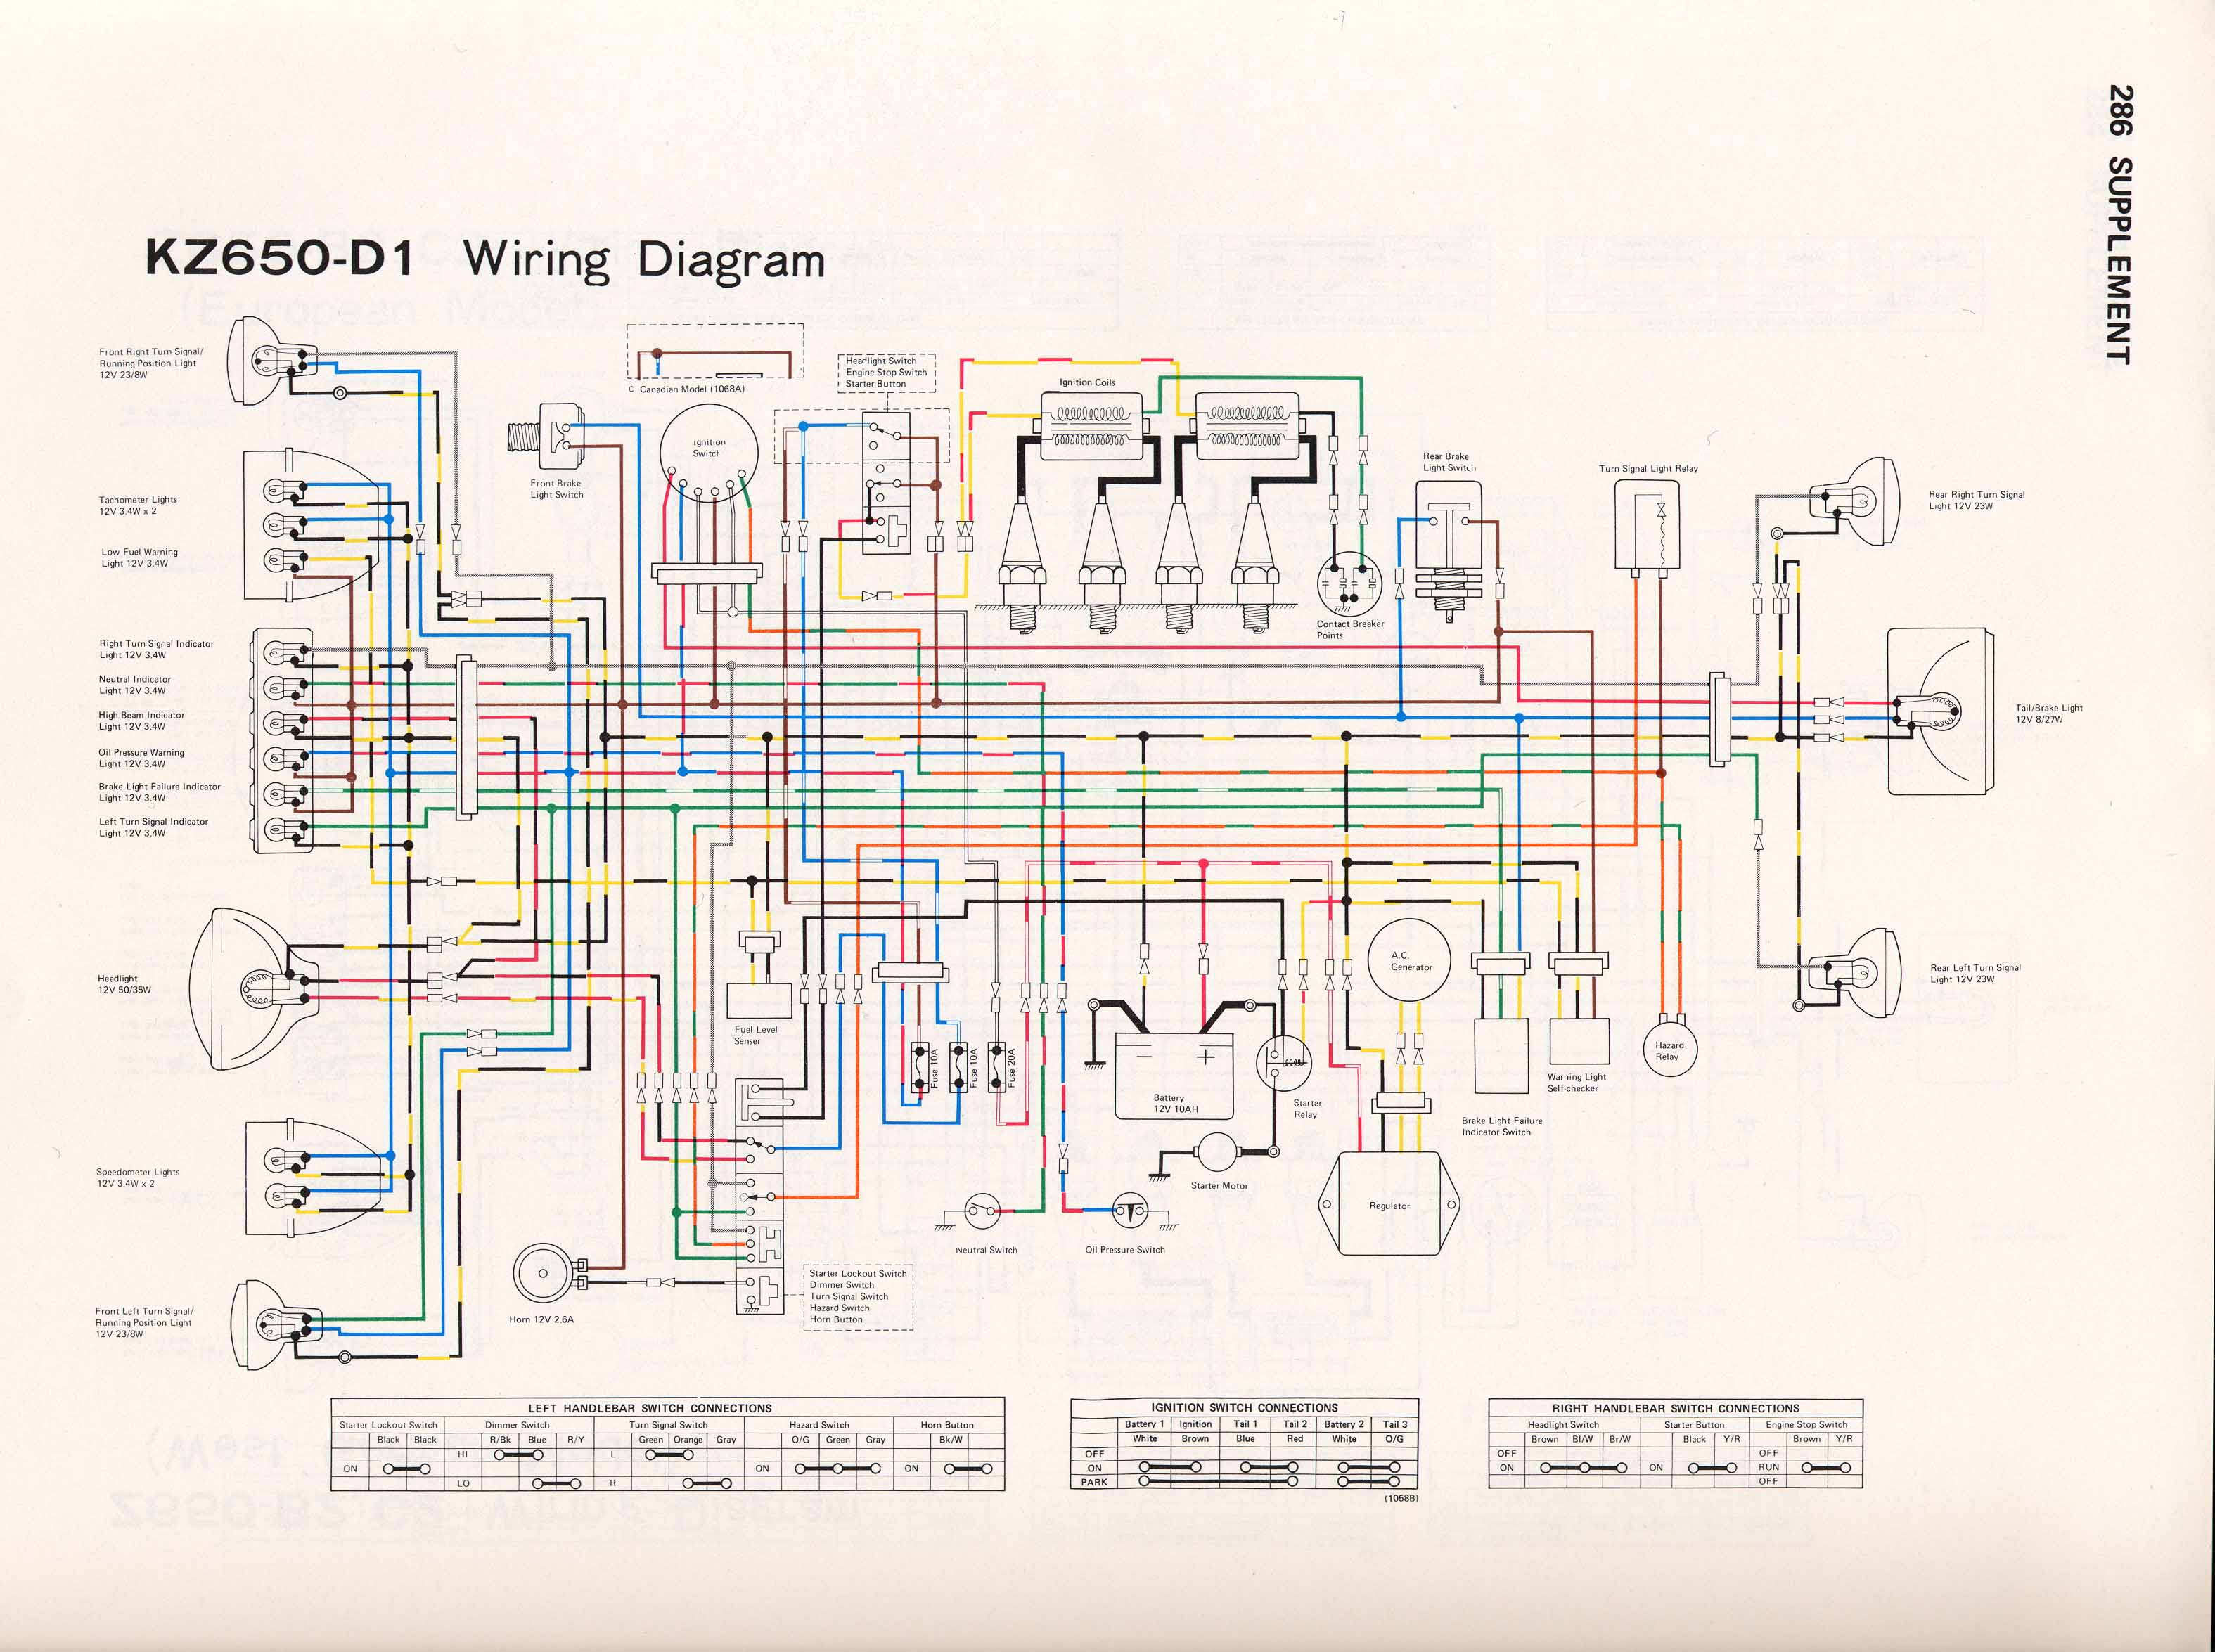 1977 kawasaki kz1000 wiring diagram venn formula for 4 sets low fuel warning light kzrider forum kz z1